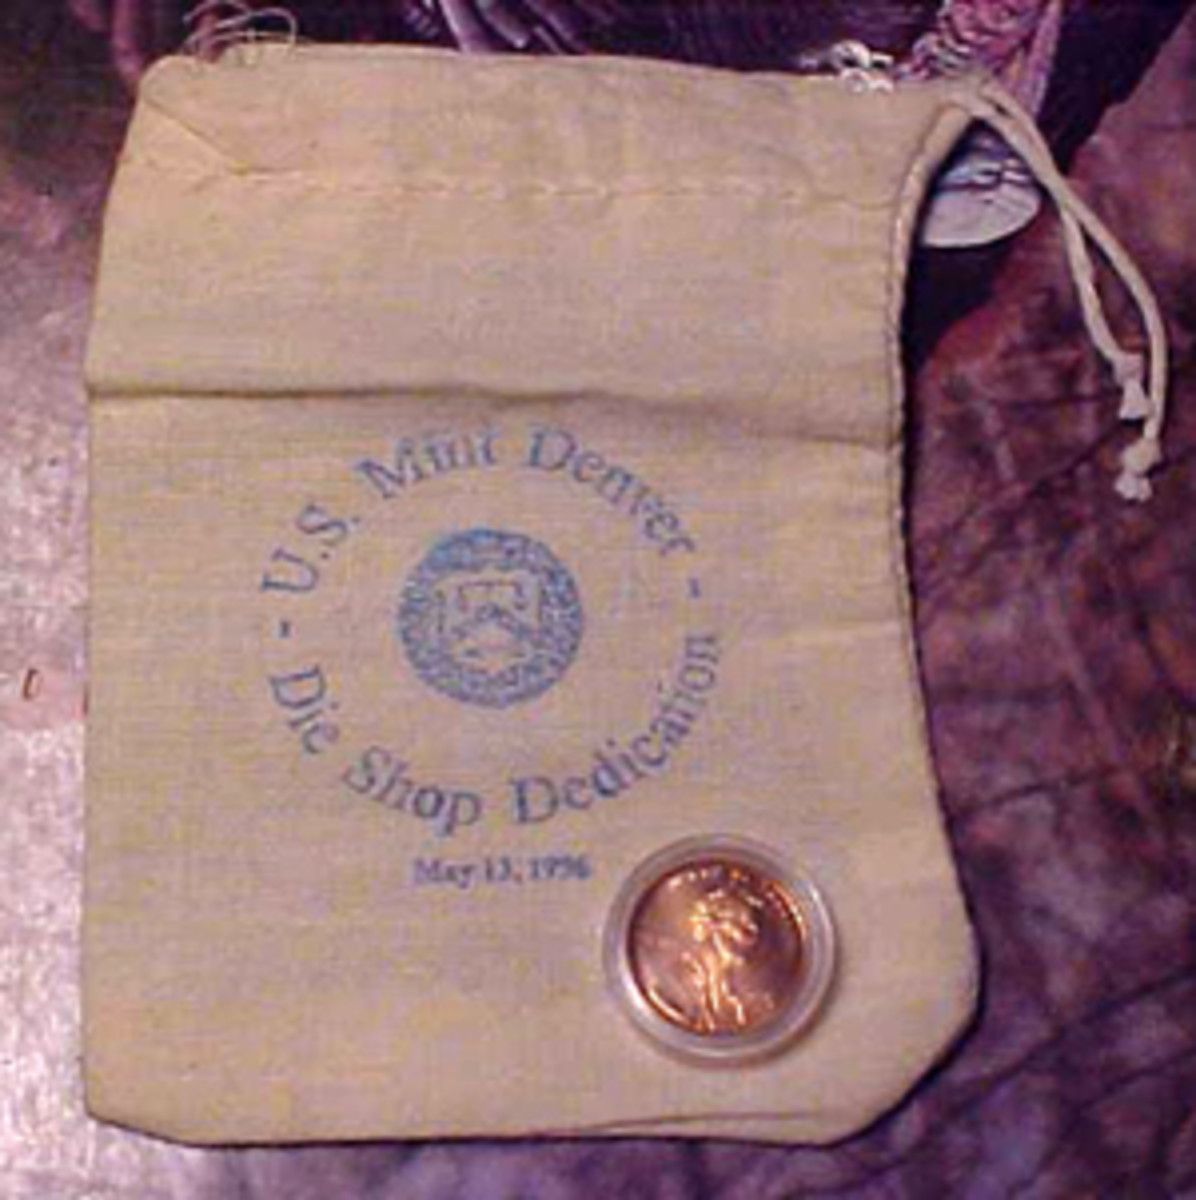 1996-D Lincoln cent and Denver Mint Pouch by Chuck Wishon Sr.